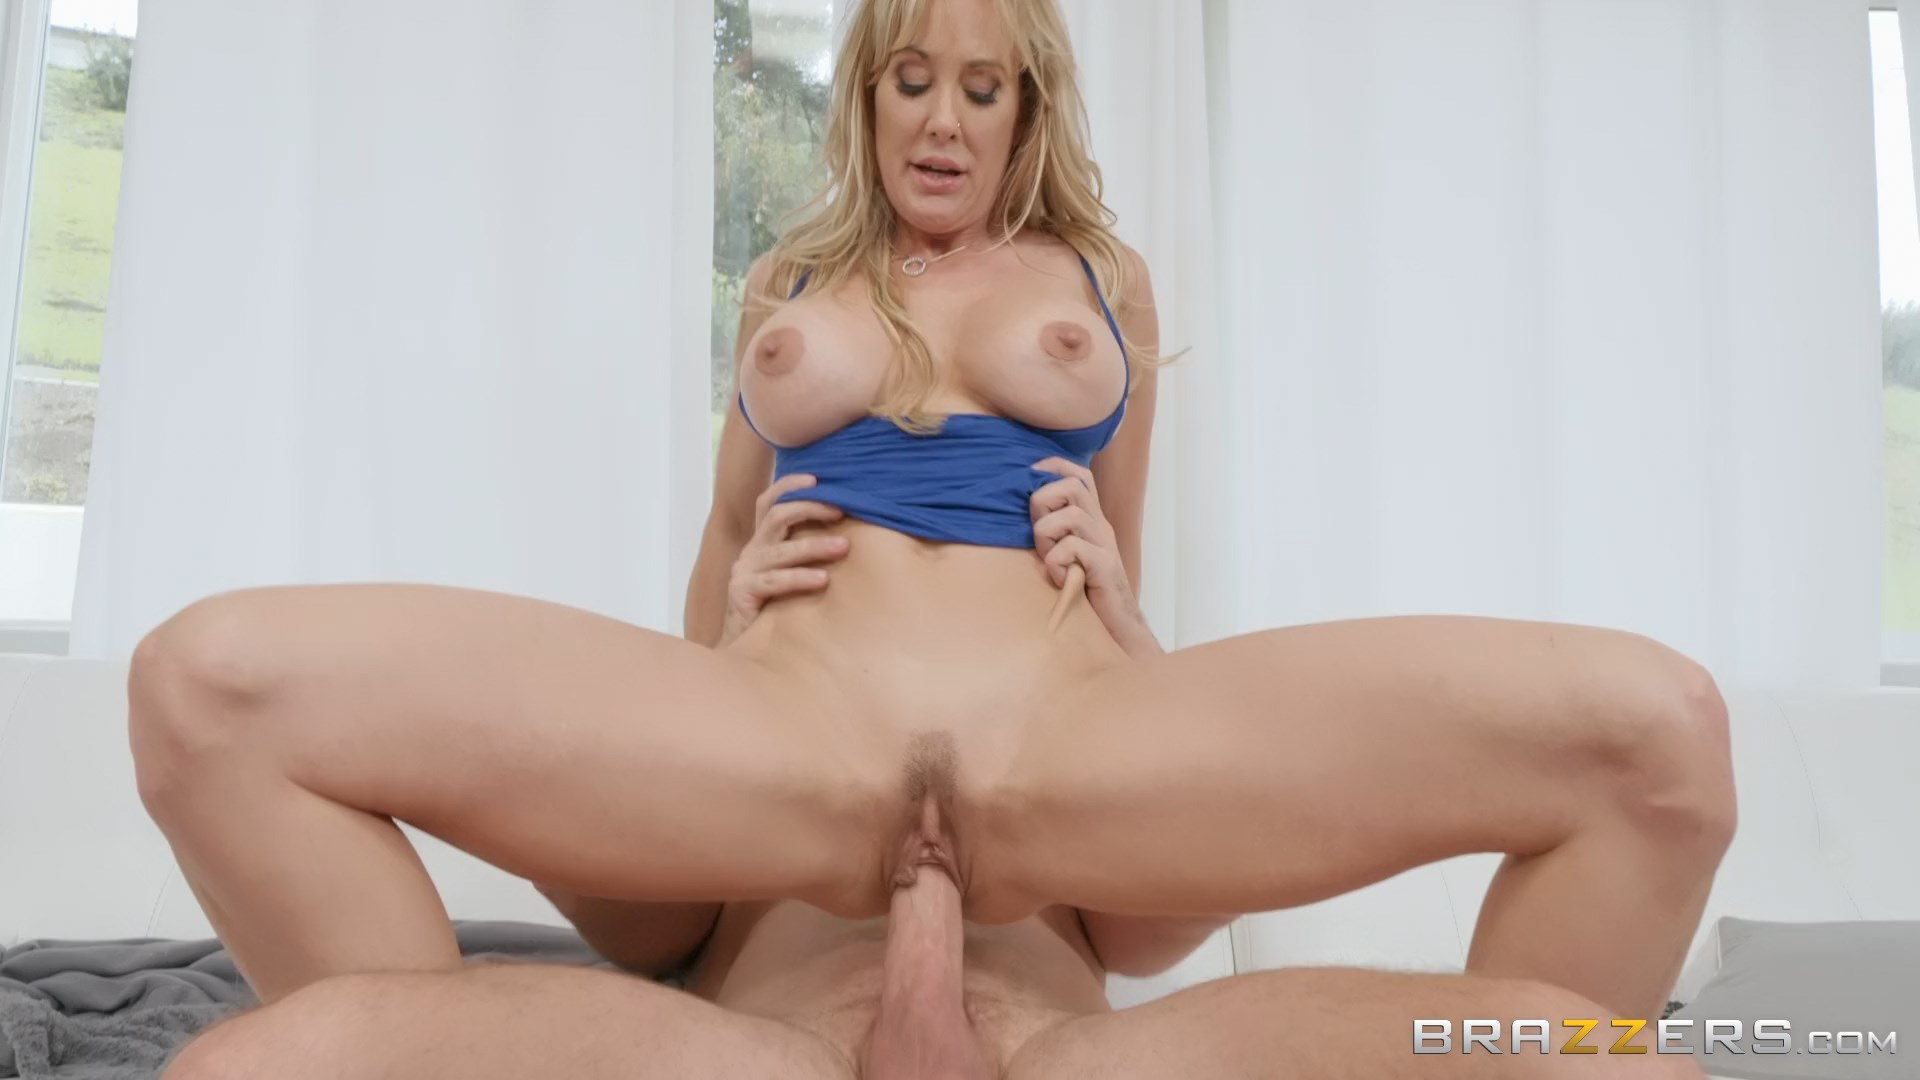 Mommy Got Boobs - Mounted By My Mother-In-Law 1080p - Brandi Love & Kyle Mason